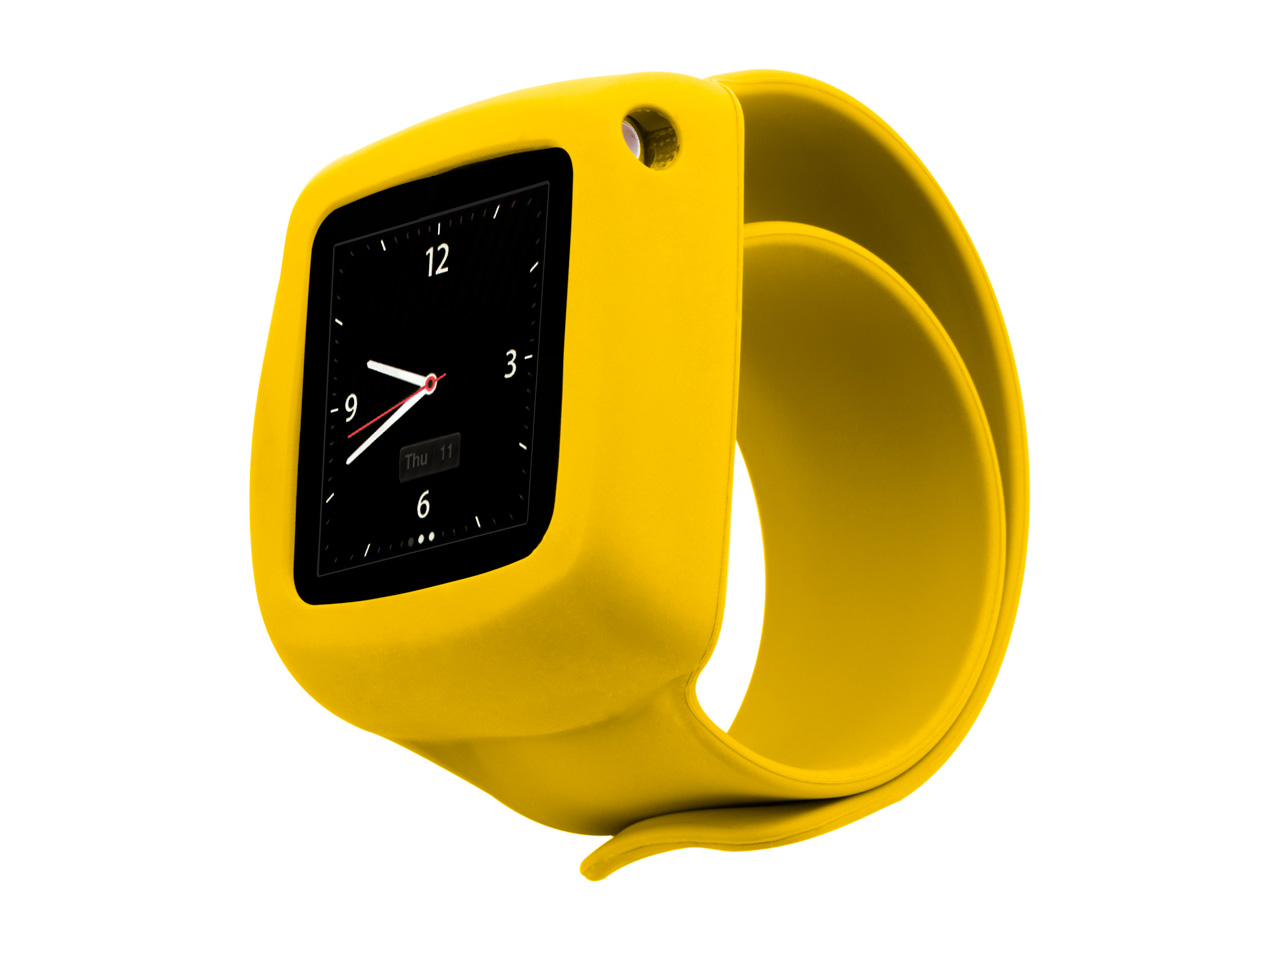 Yellow Slap Bracelet Case for iPod nano (6th gen.)